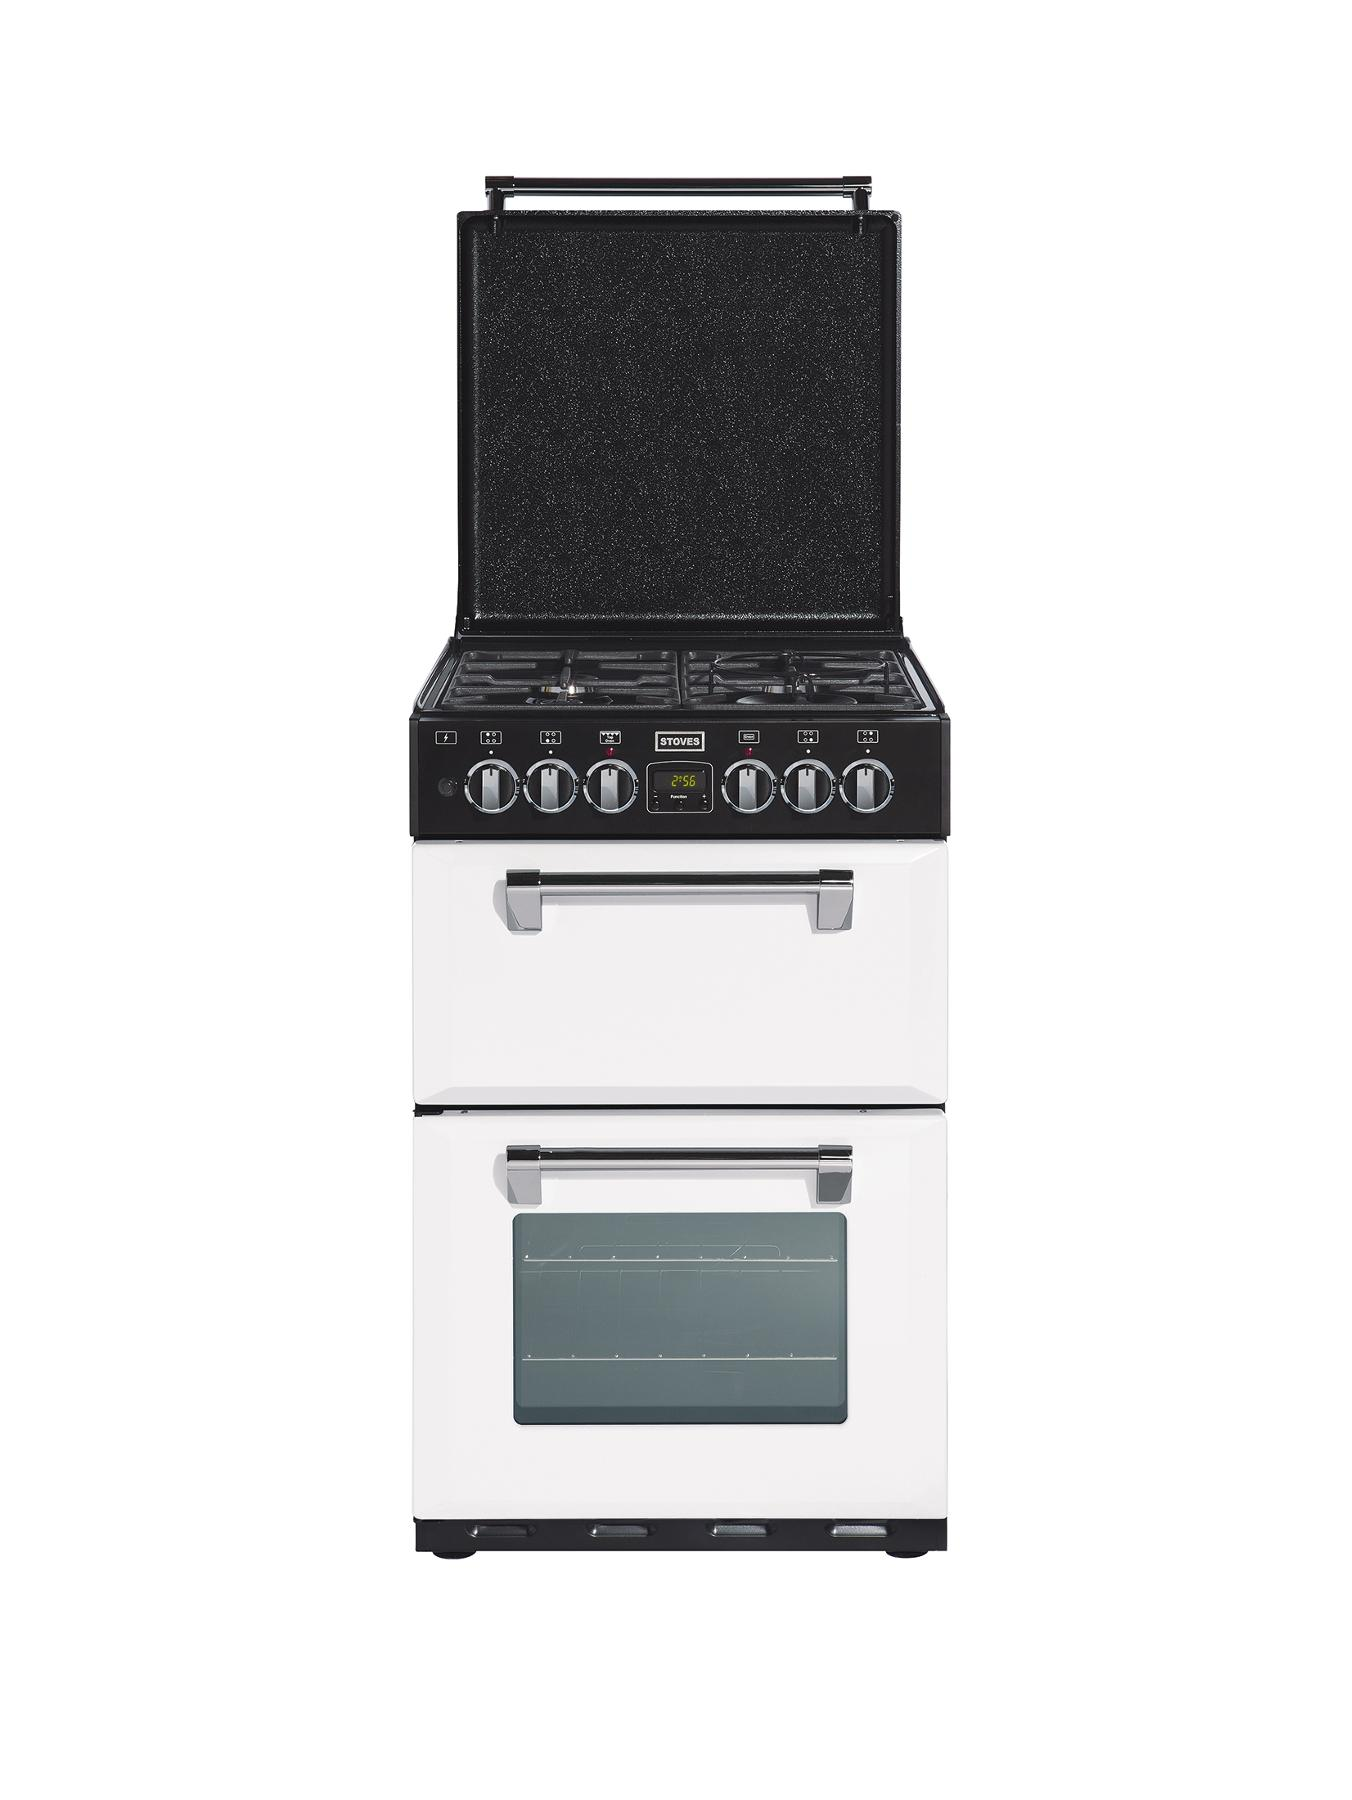 550DFW 55cm Double Oven Dual Fuel Cooker - Icy Brook